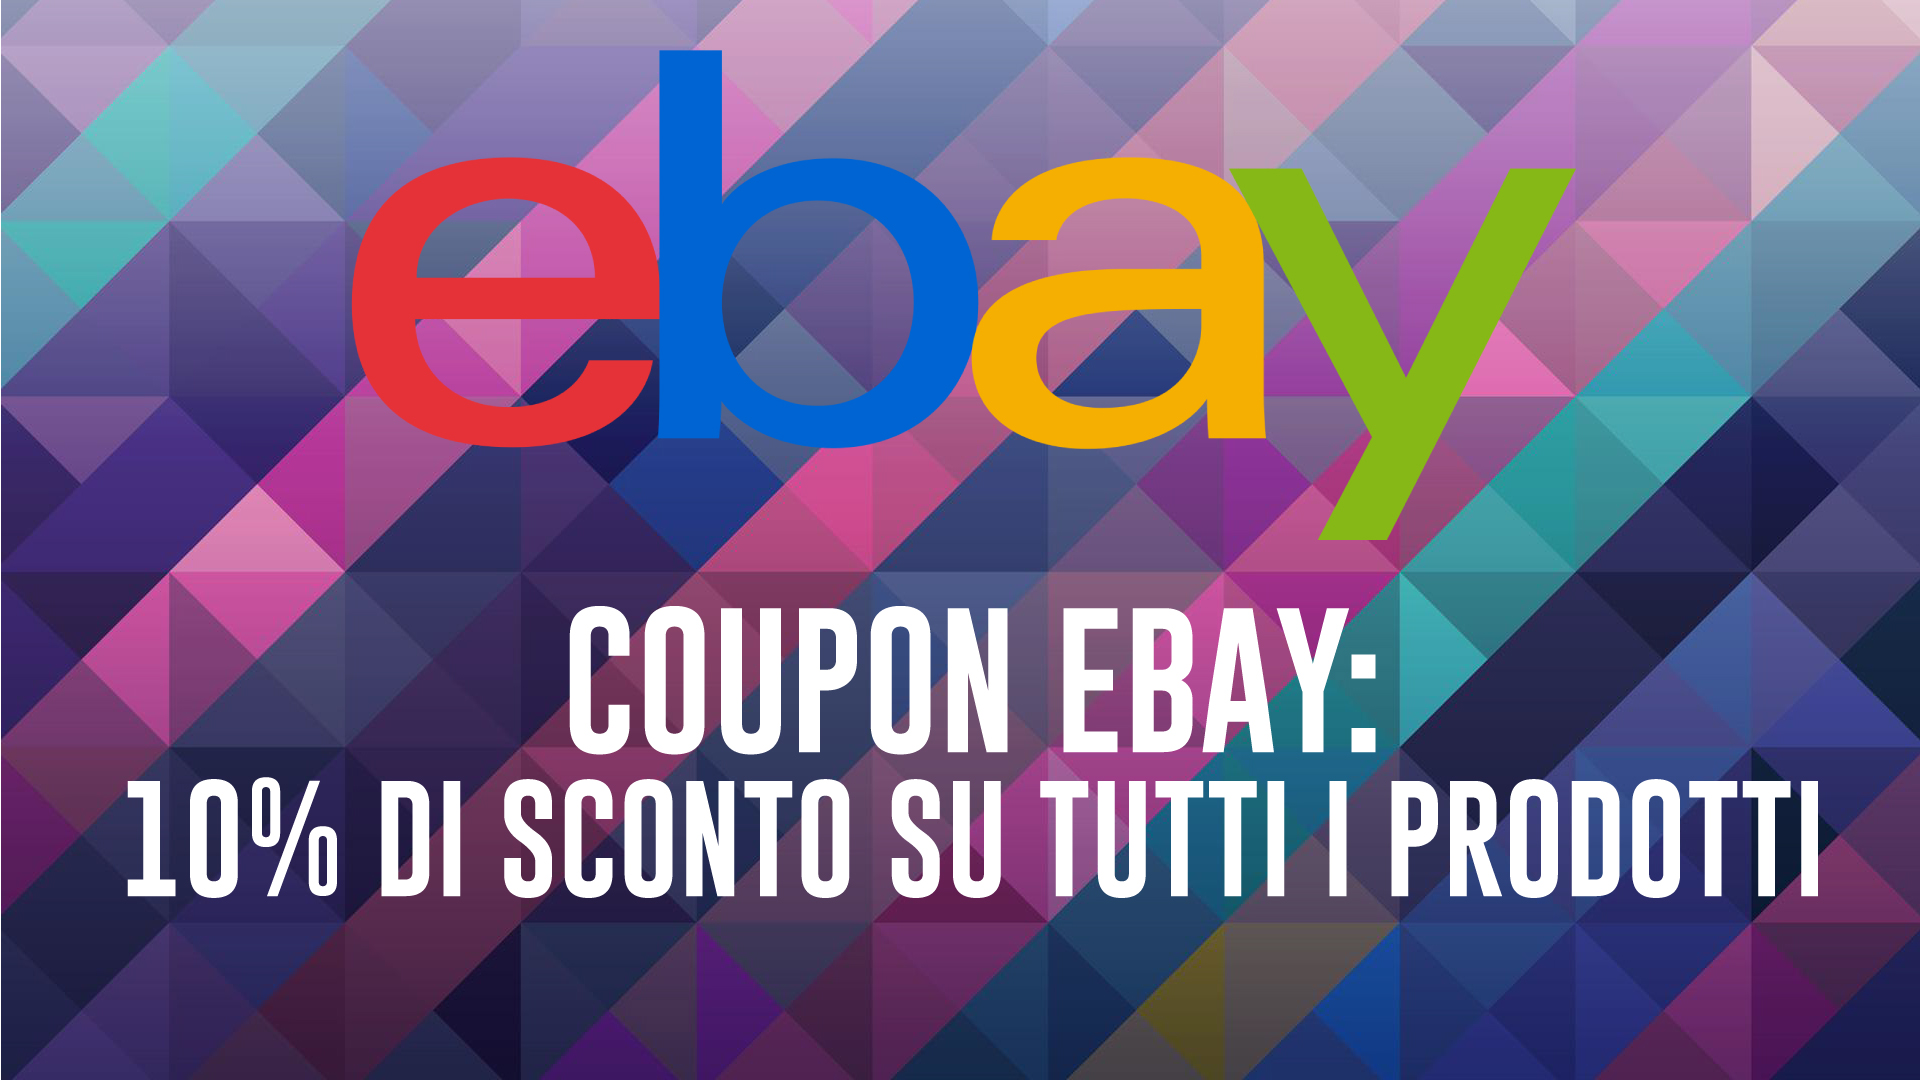 EBay coupons for Christmas: 10% discount on many products!